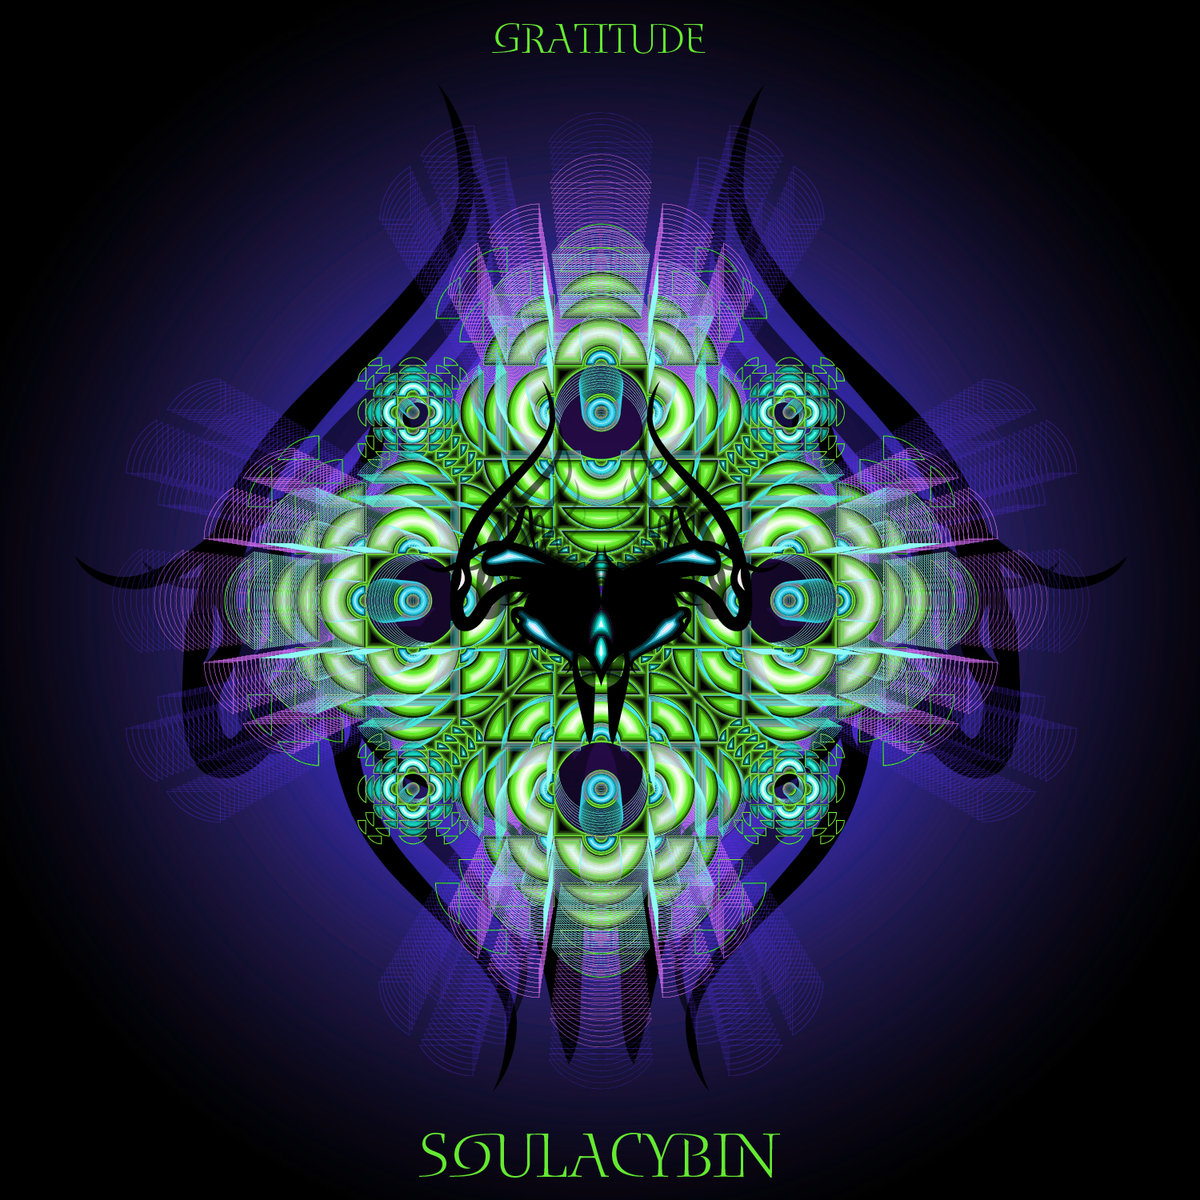 Soulacybin feat. Alaya Love - The Activation Part 2 (Sequencing Complete) @ 'Gratitude' album (electronic, ambient)